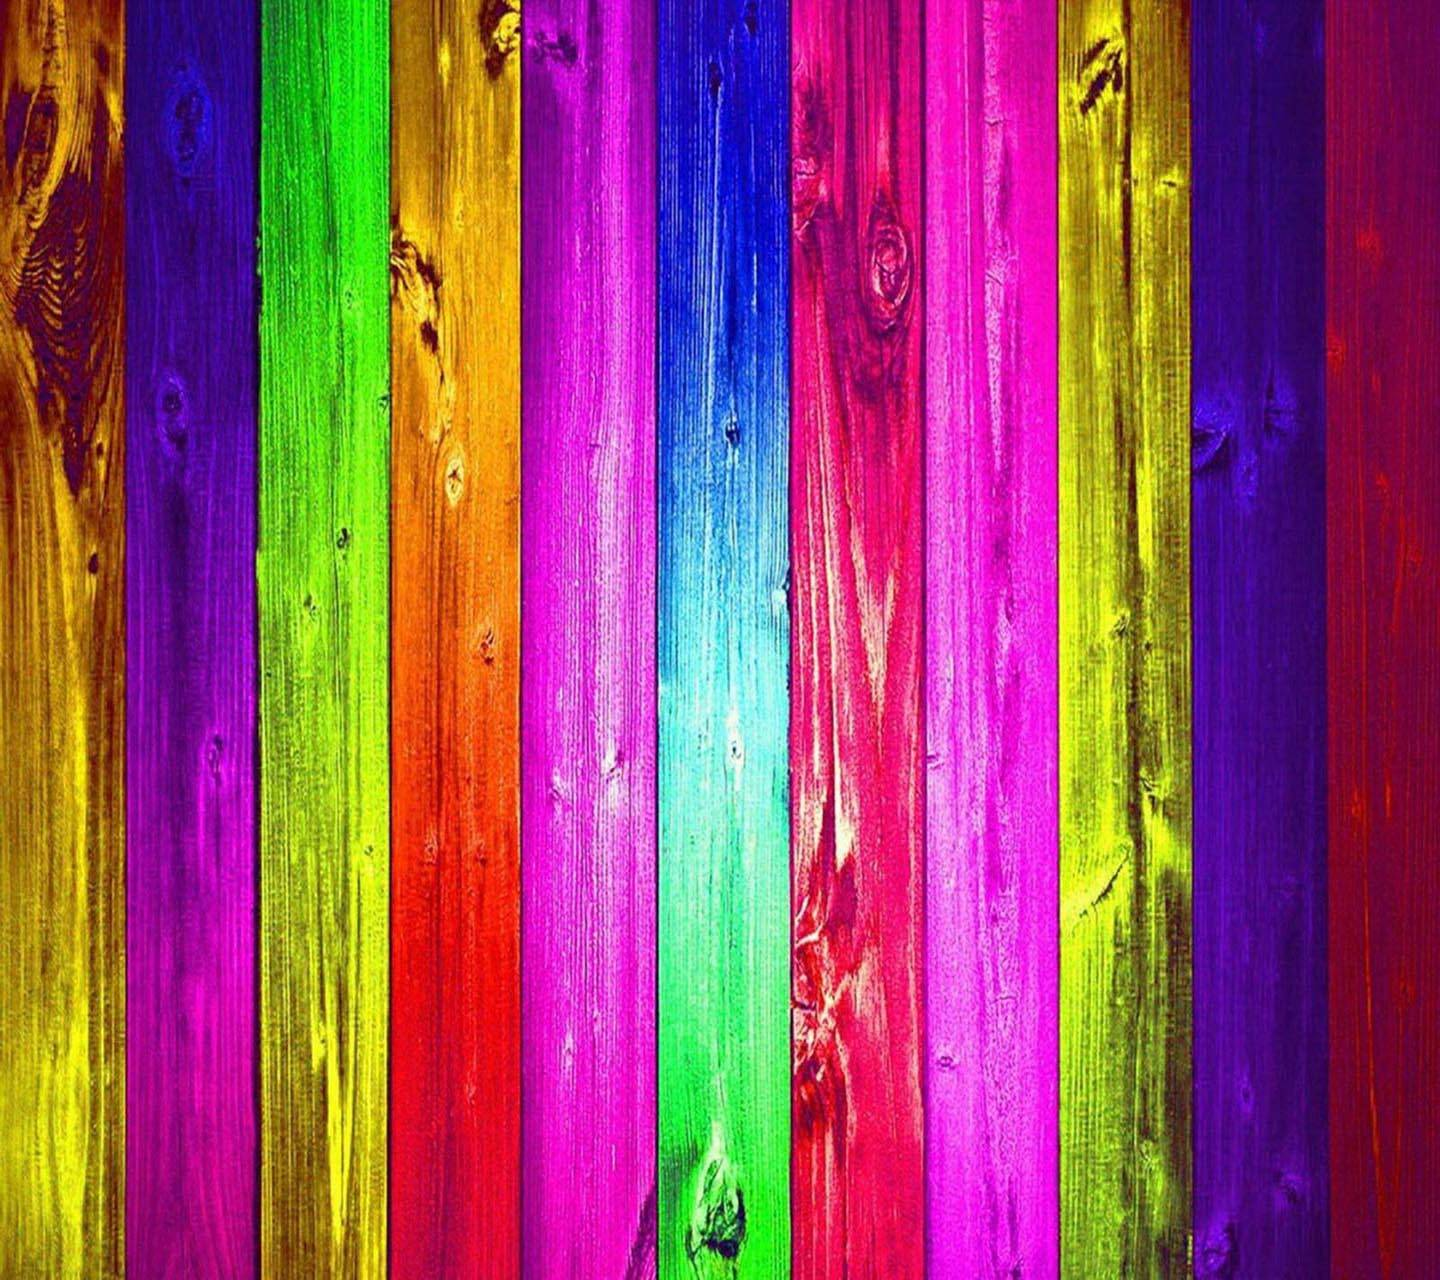 Wooden colorful